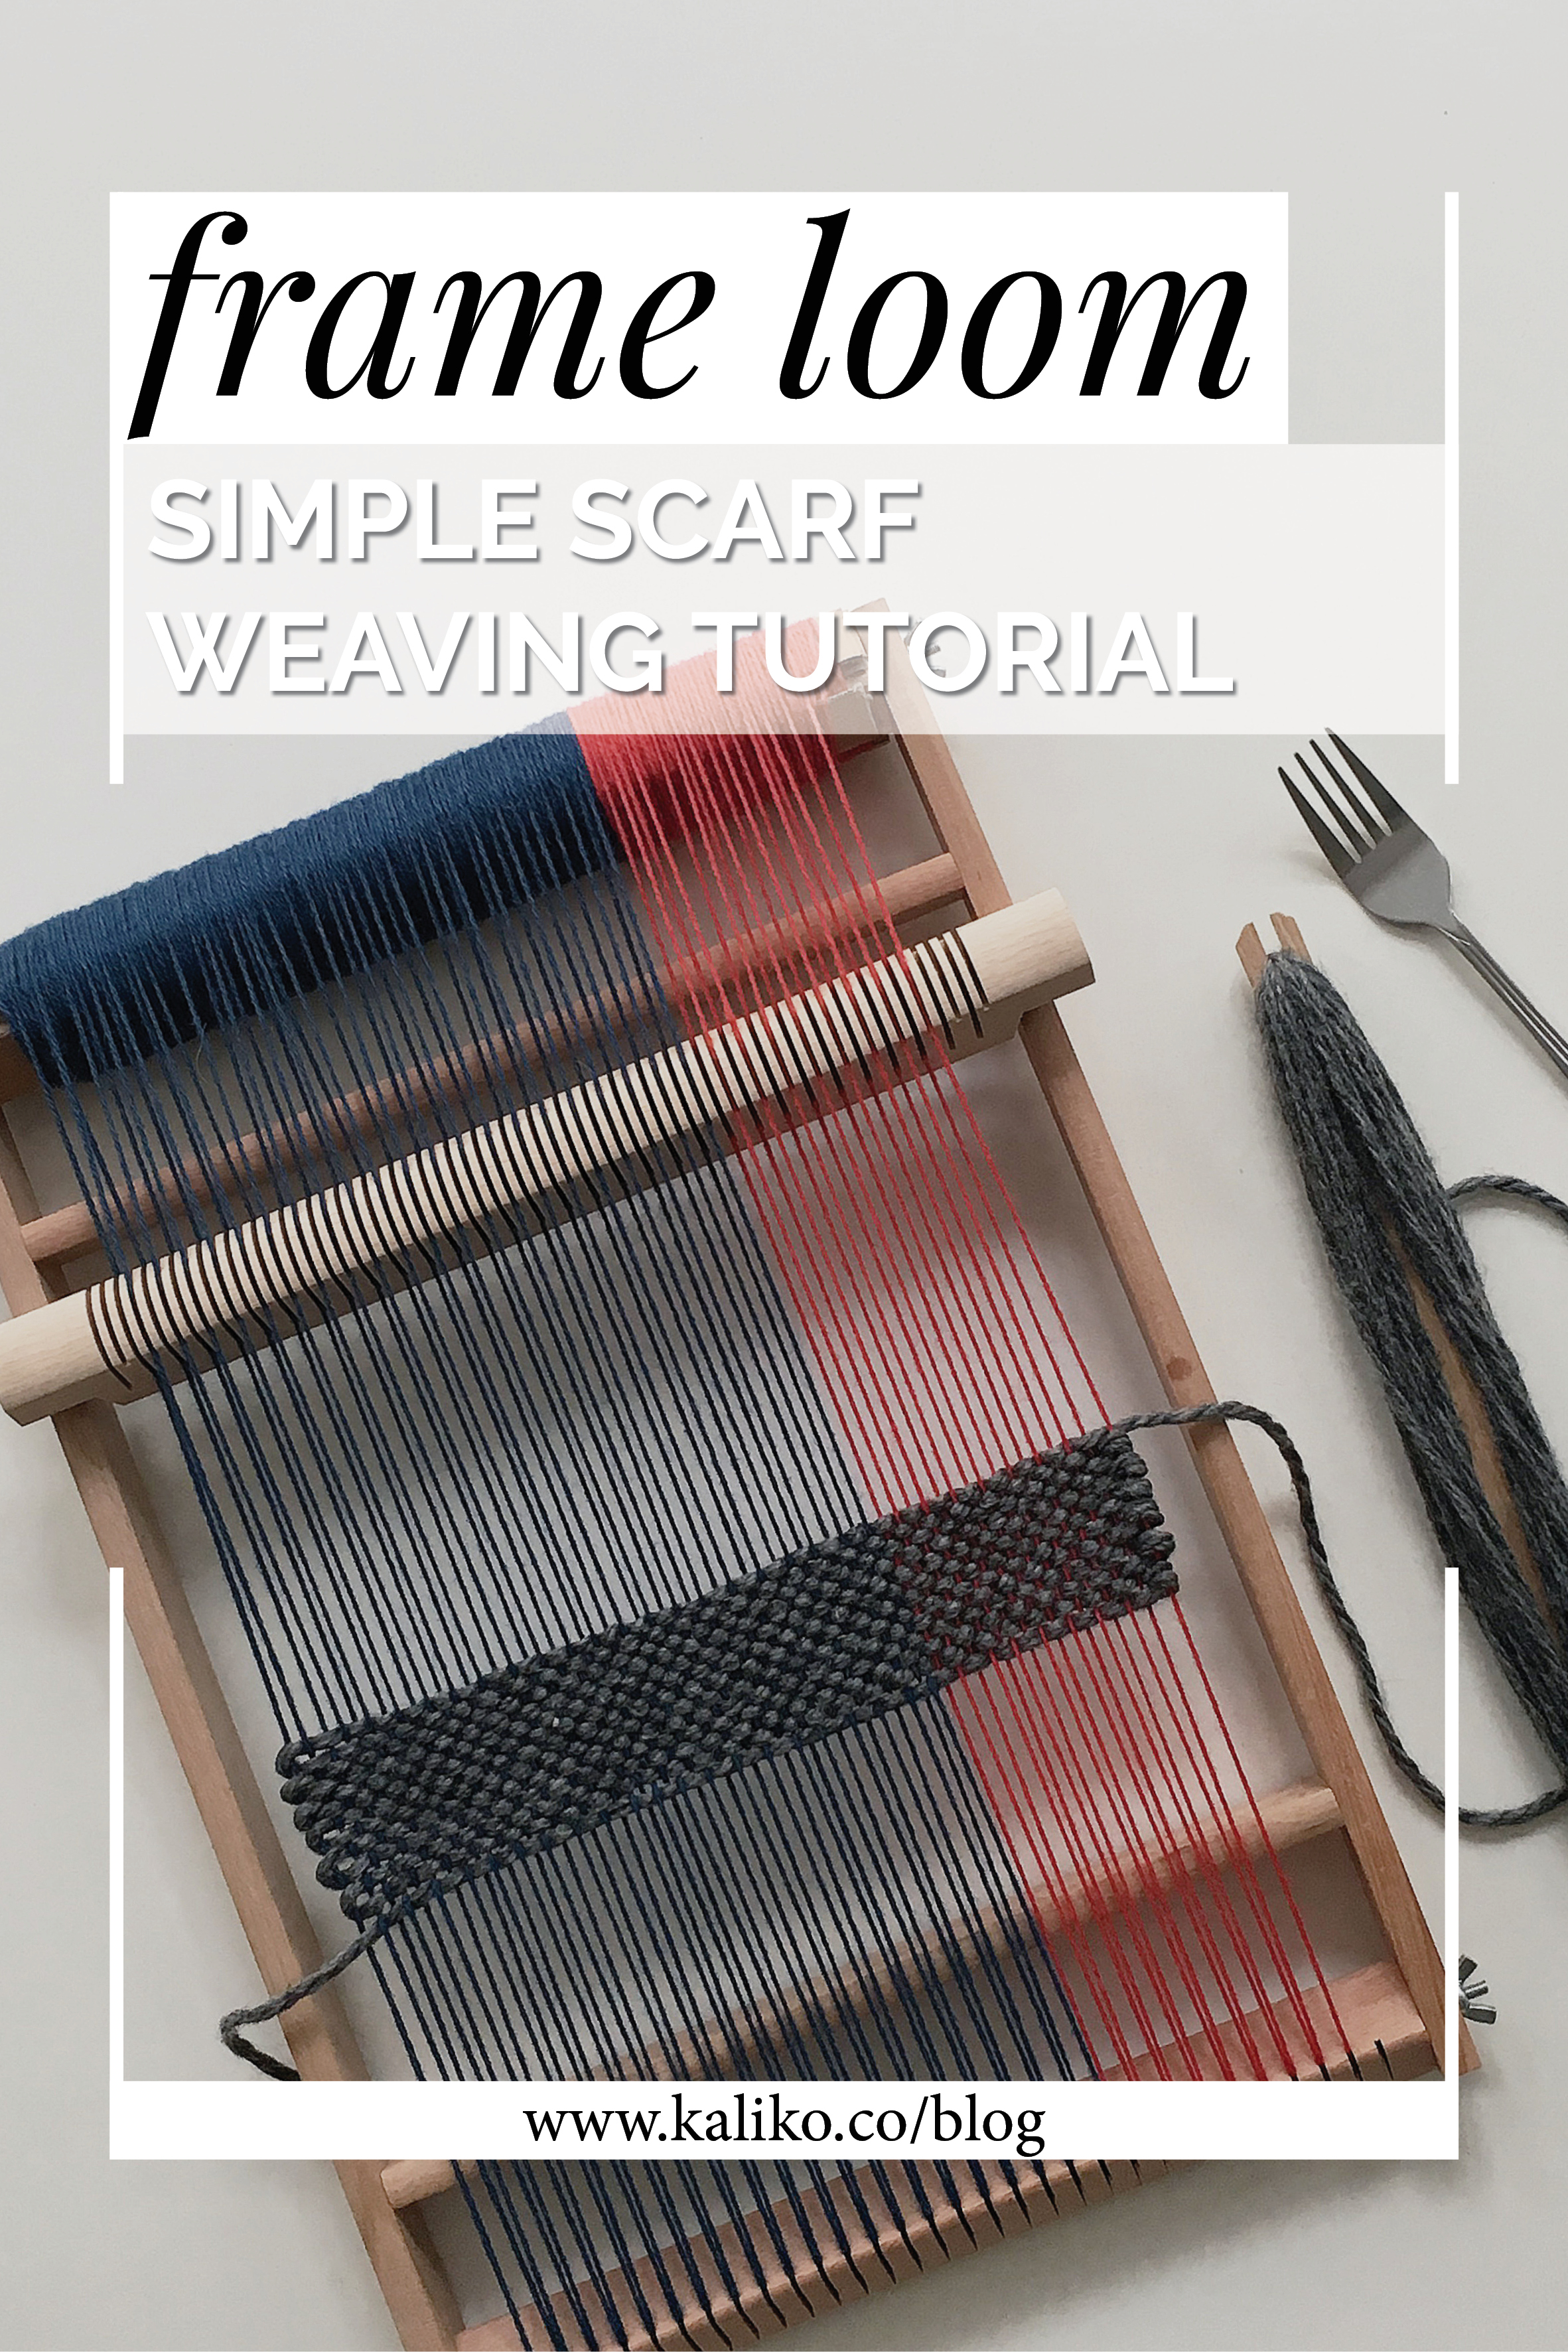 How to warp a frame loom - a simple tutorial for beginner weavers working on a lap loom. Heddle bar tips and the best type of weaving loom in action. #weaving #tutorial #frameloom #fiberart #diycrafts